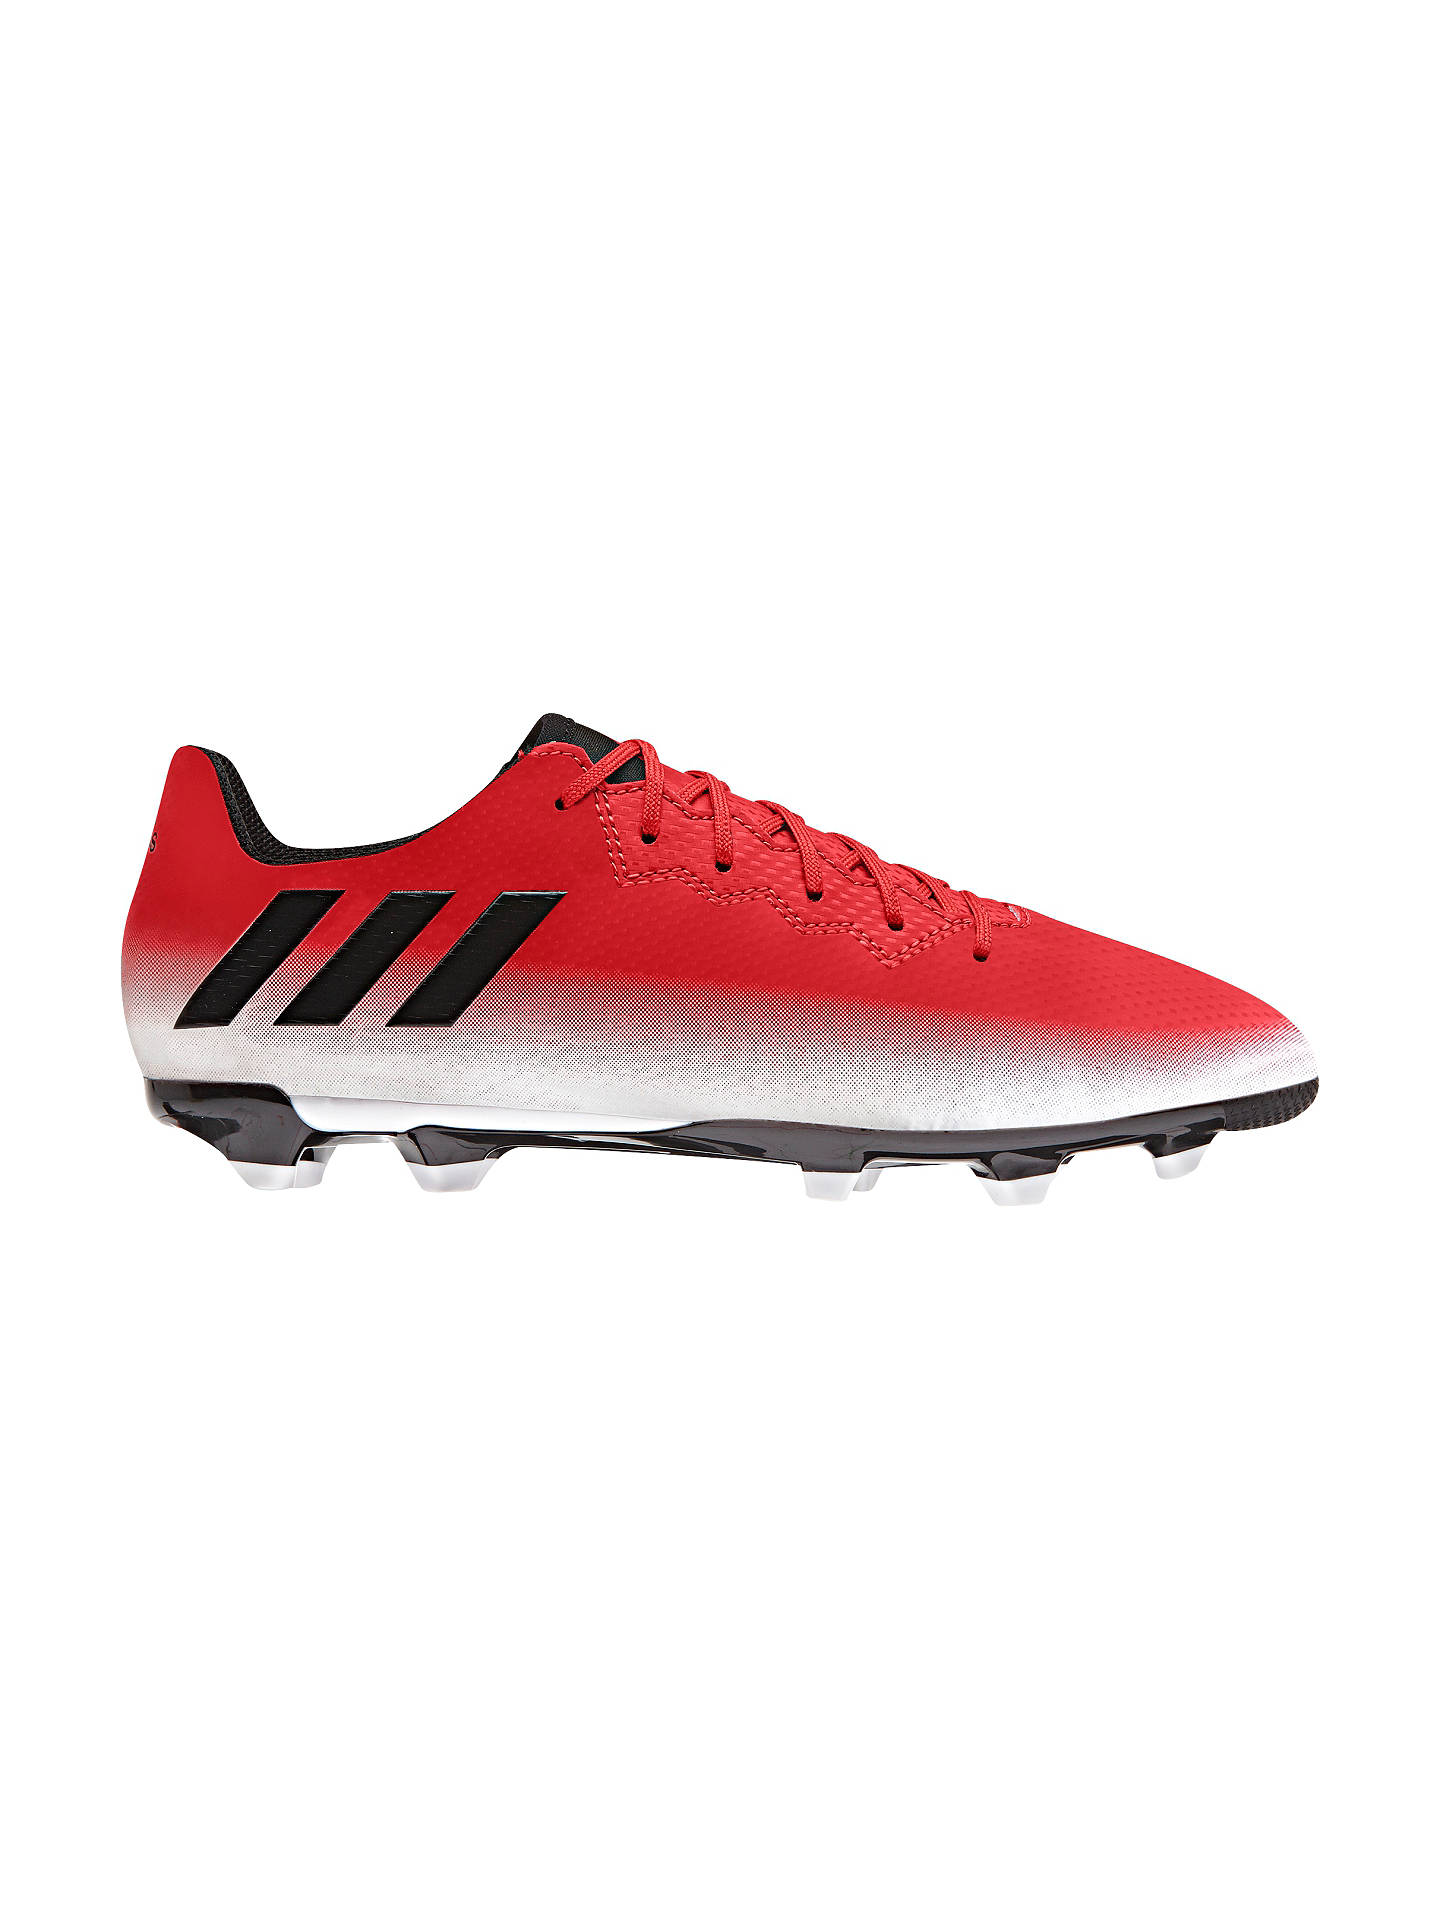 ef575b6f5 Buy adidas Children s Messi 16.3 FG Football Boots